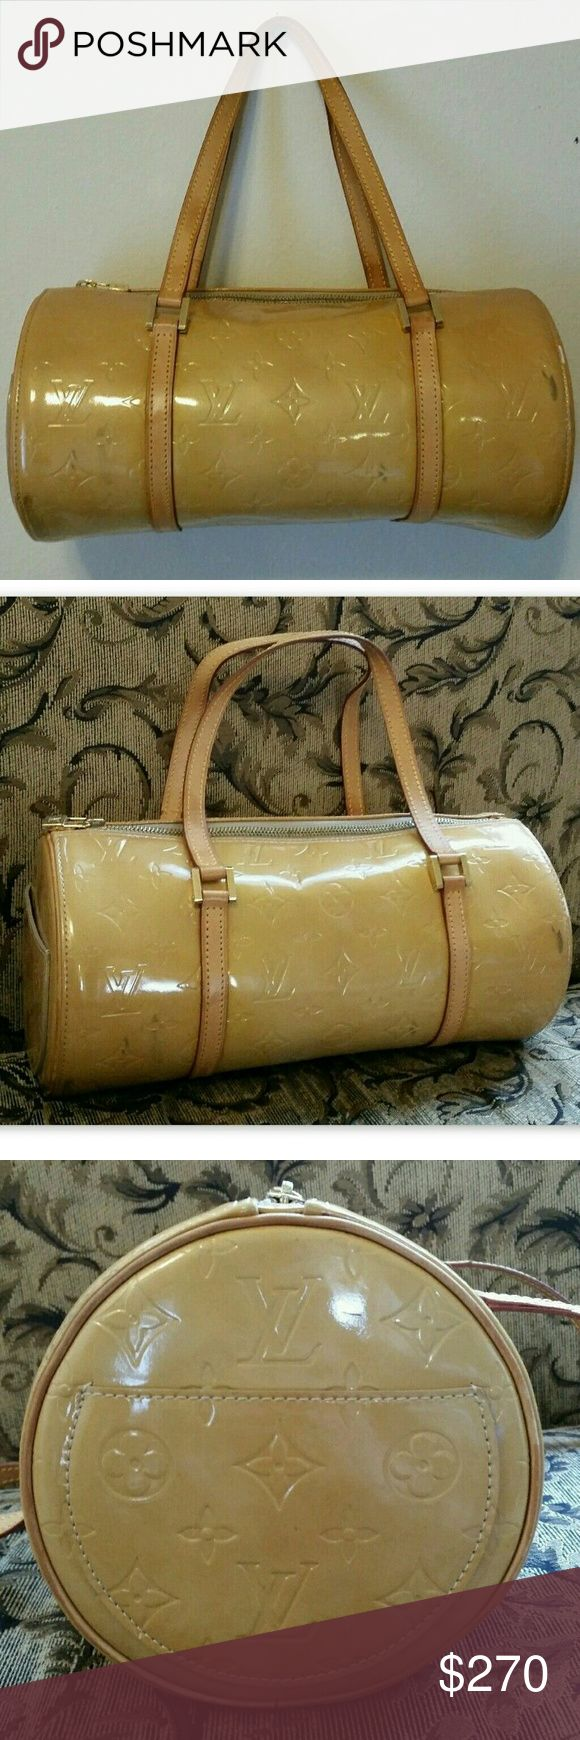 LOUIS VUITTON Auth Vernis Bedford Handbag Yellow (With